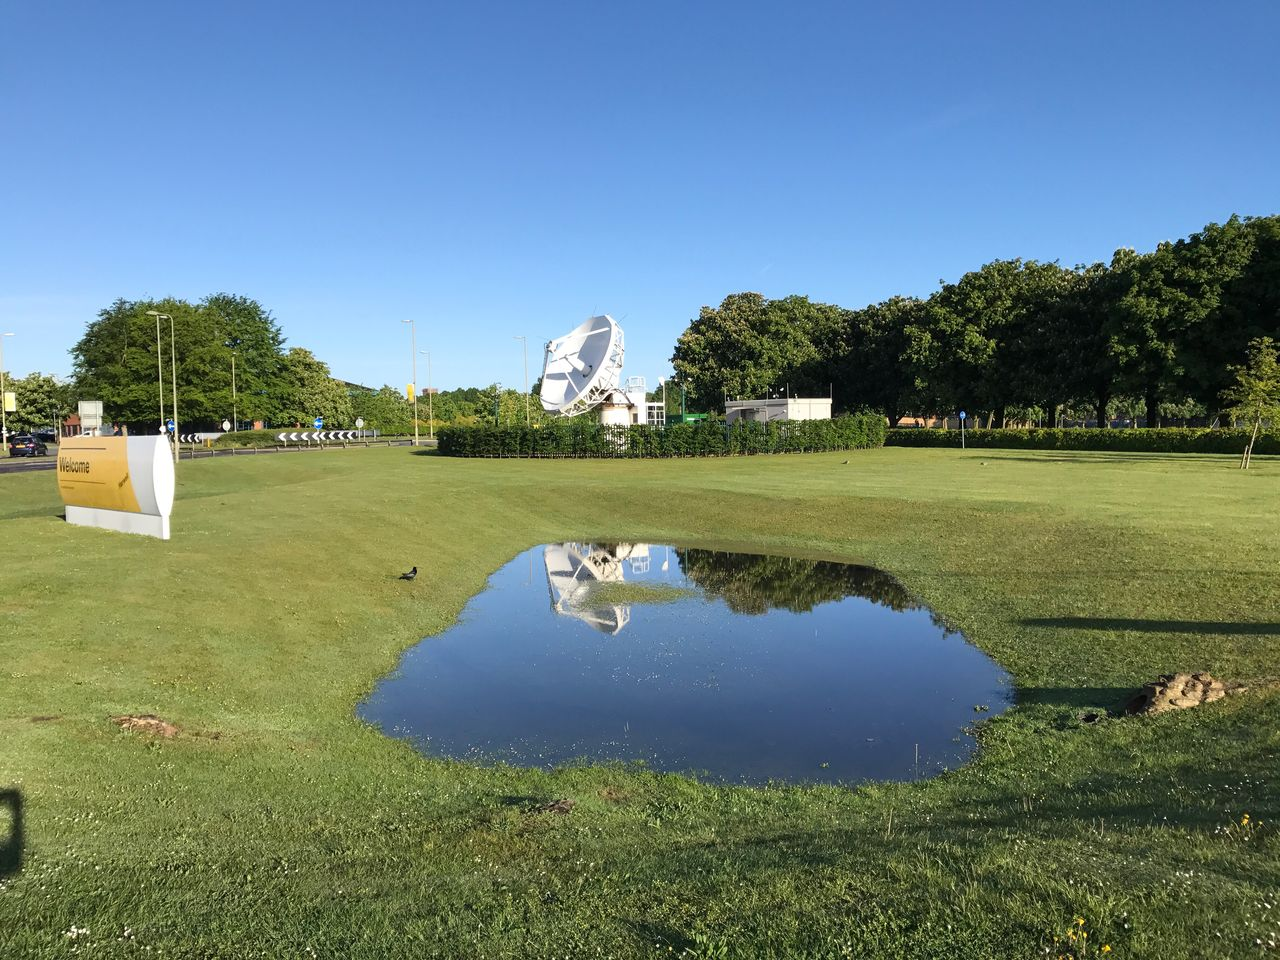 grass, tree, green color, reflection, water, day, nature, outdoors, clear sky, lake, beauty in nature, blue, park - man made space, growth, sunlight, built structure, no people, architecture, golf course, sky, animal themes